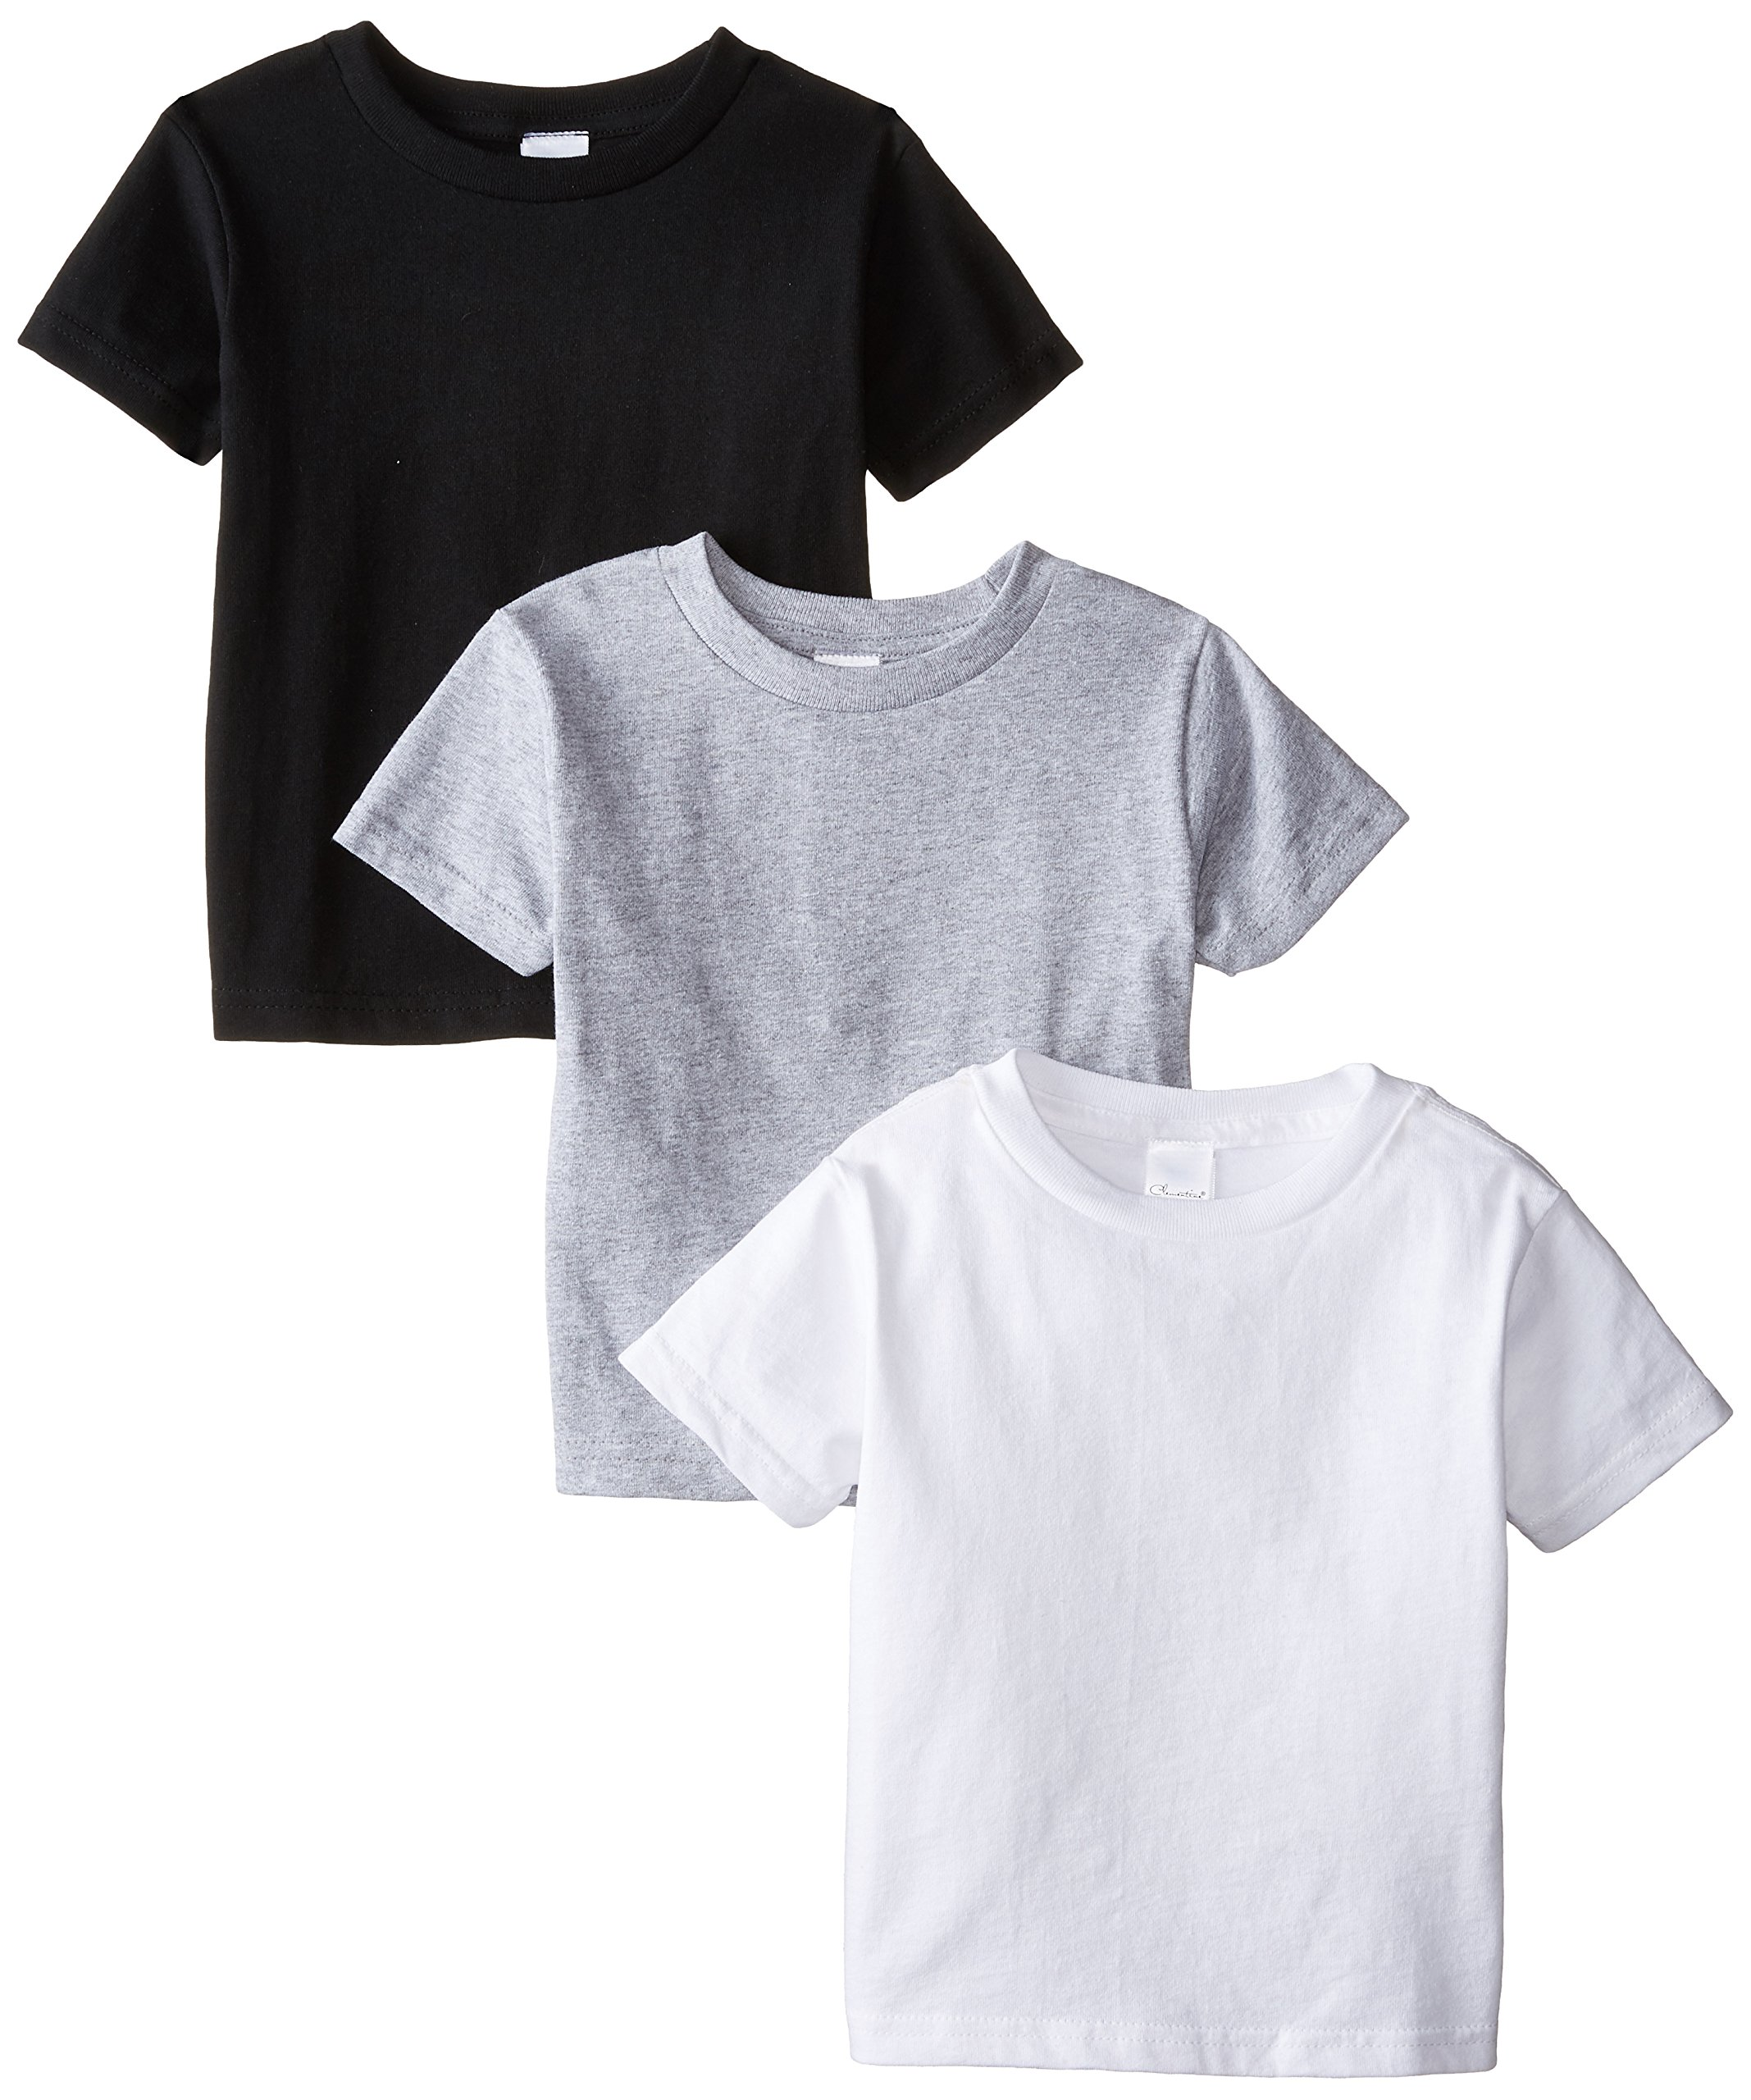 Clementine Little Girls' Toddler Short Sleeve Basic Tee 3-Pack, White/Black/Grey, 2T